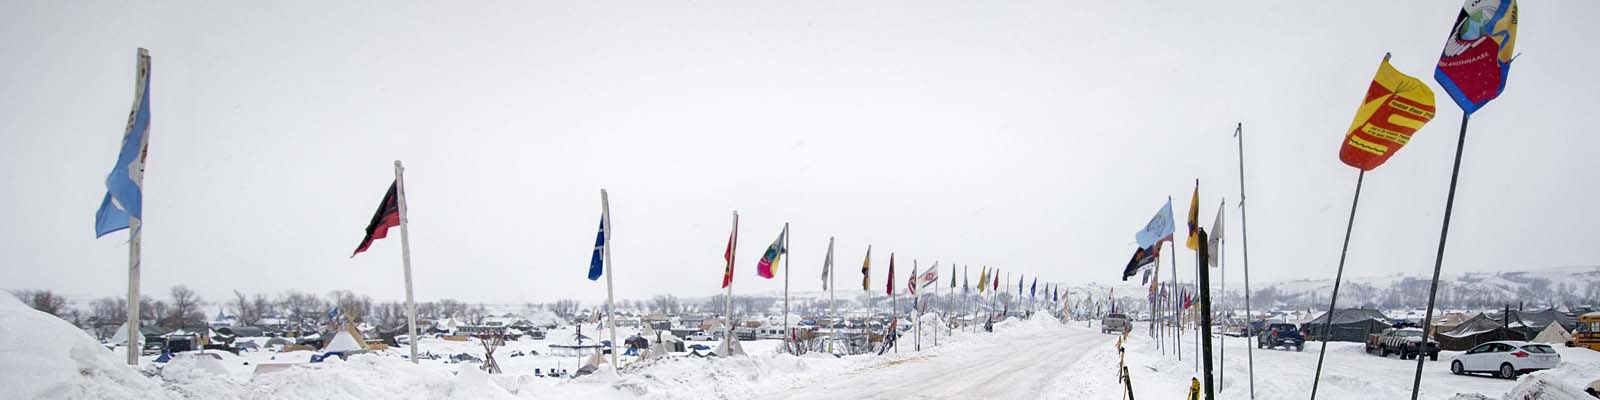 PIctured: A snowy road with flags in North Dakota.